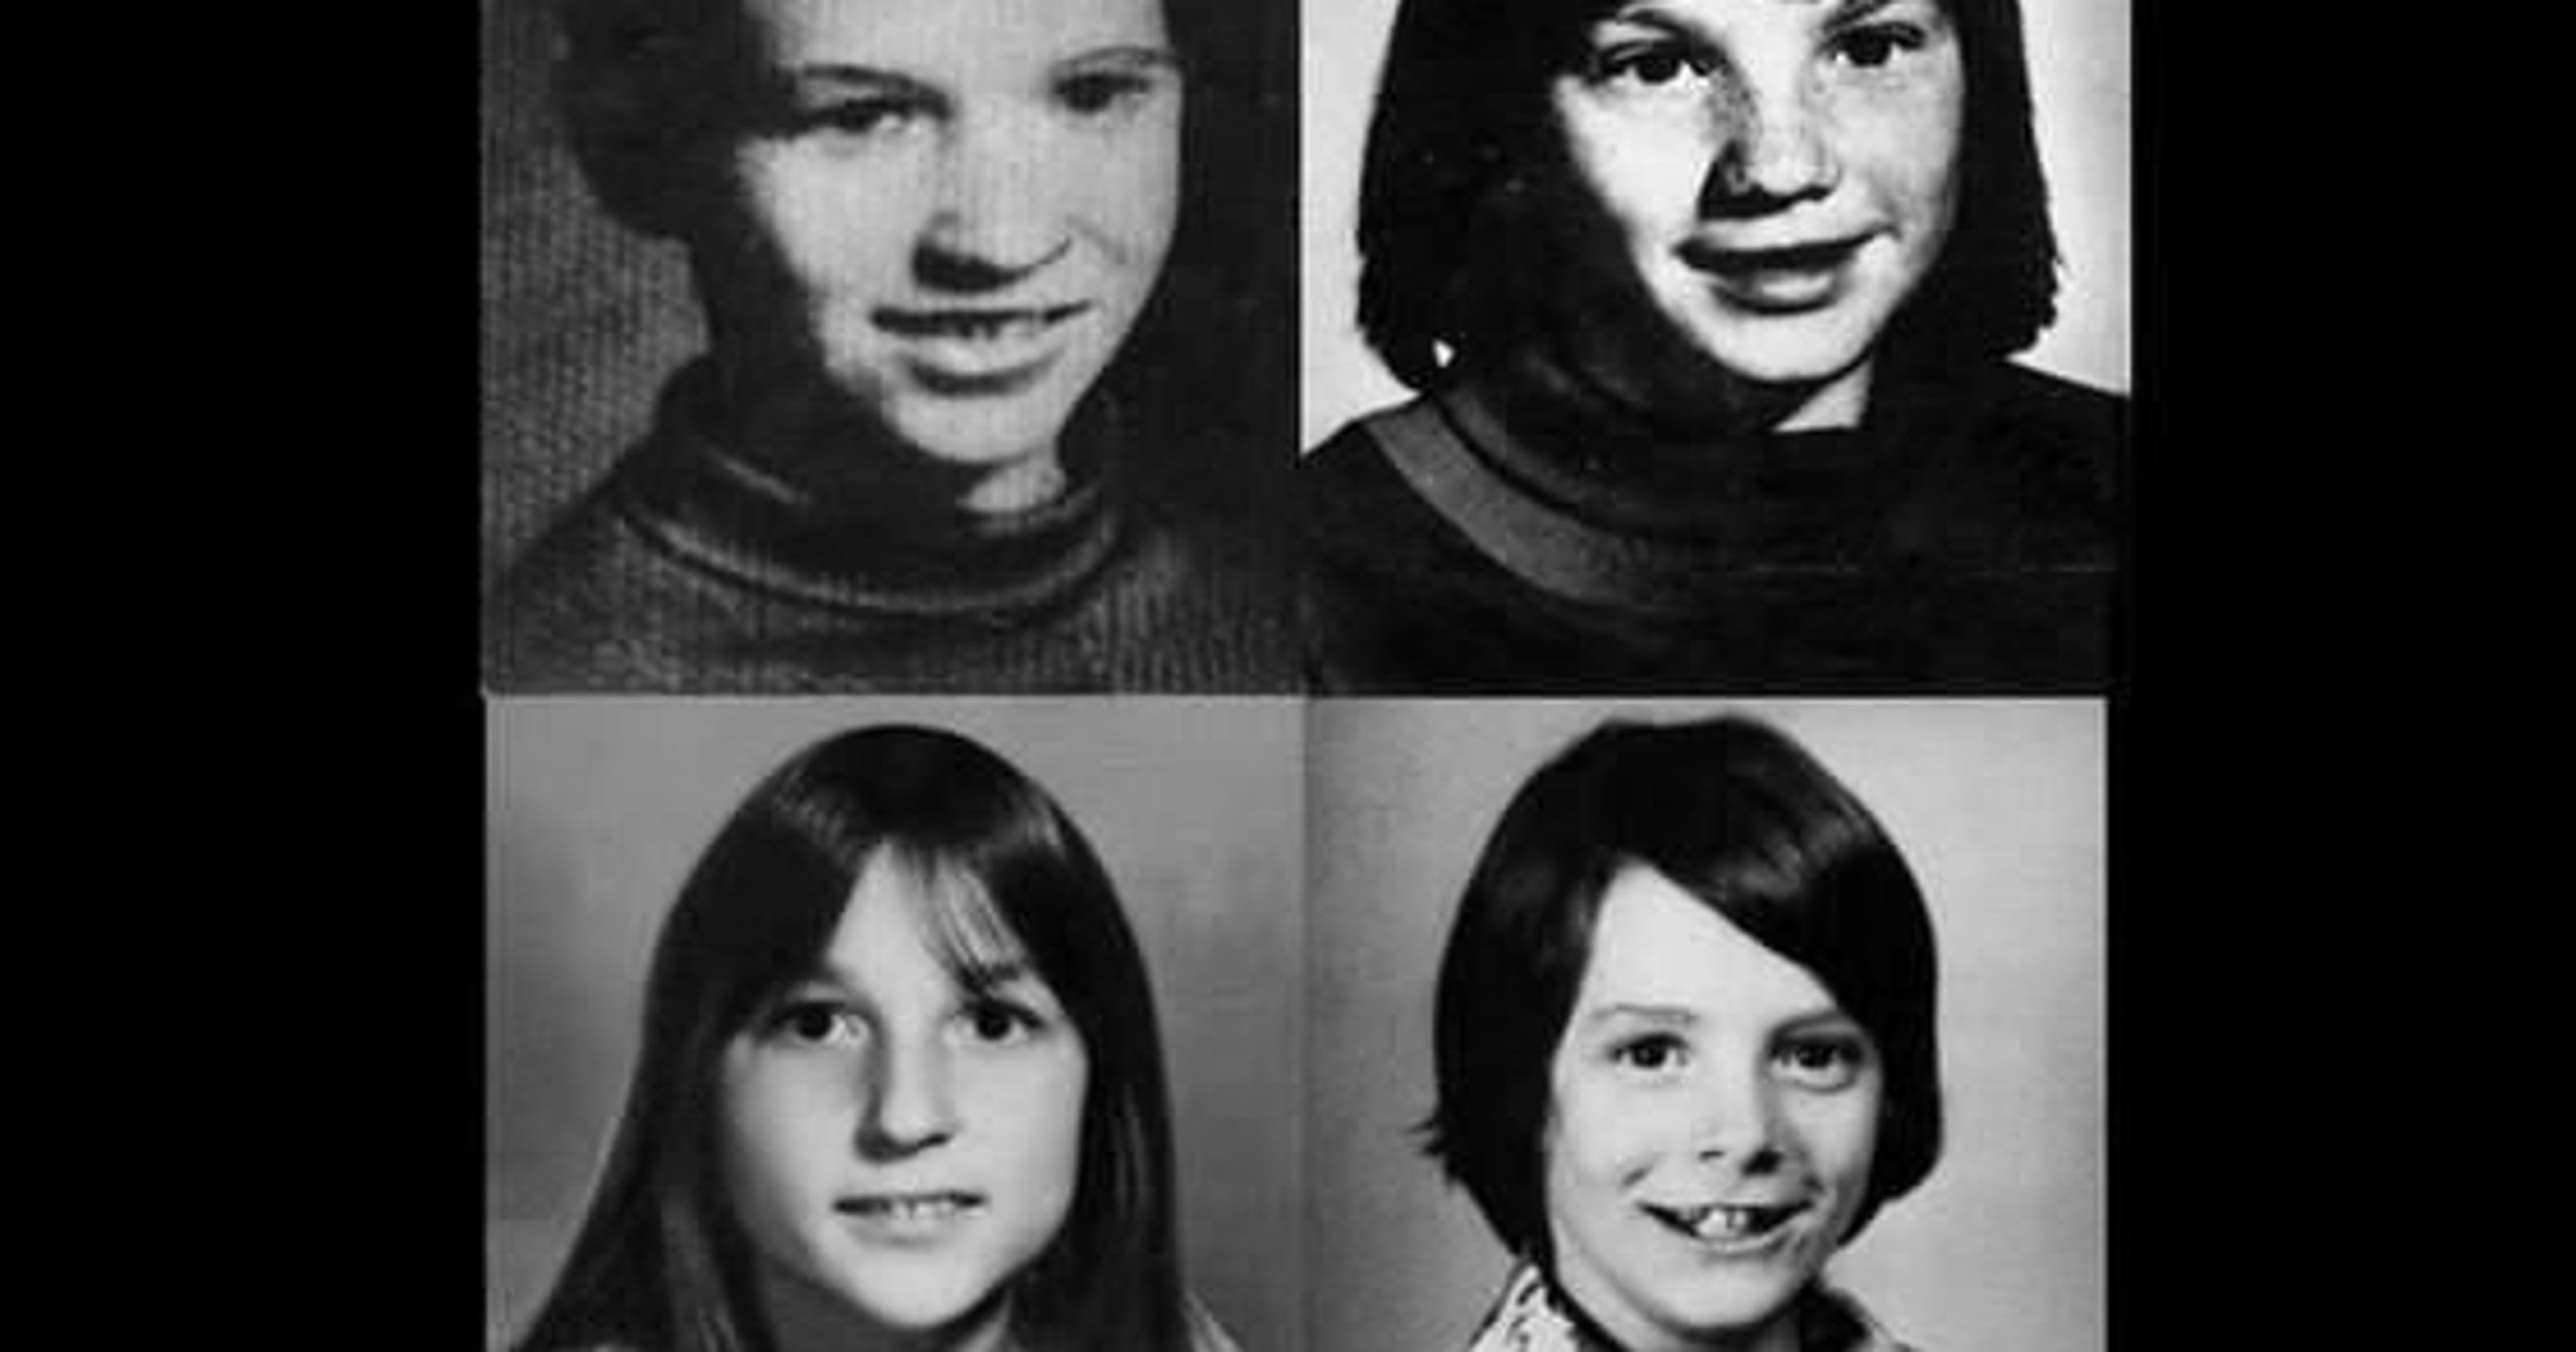 Unsolved metro Detroit child murders get TV documentary